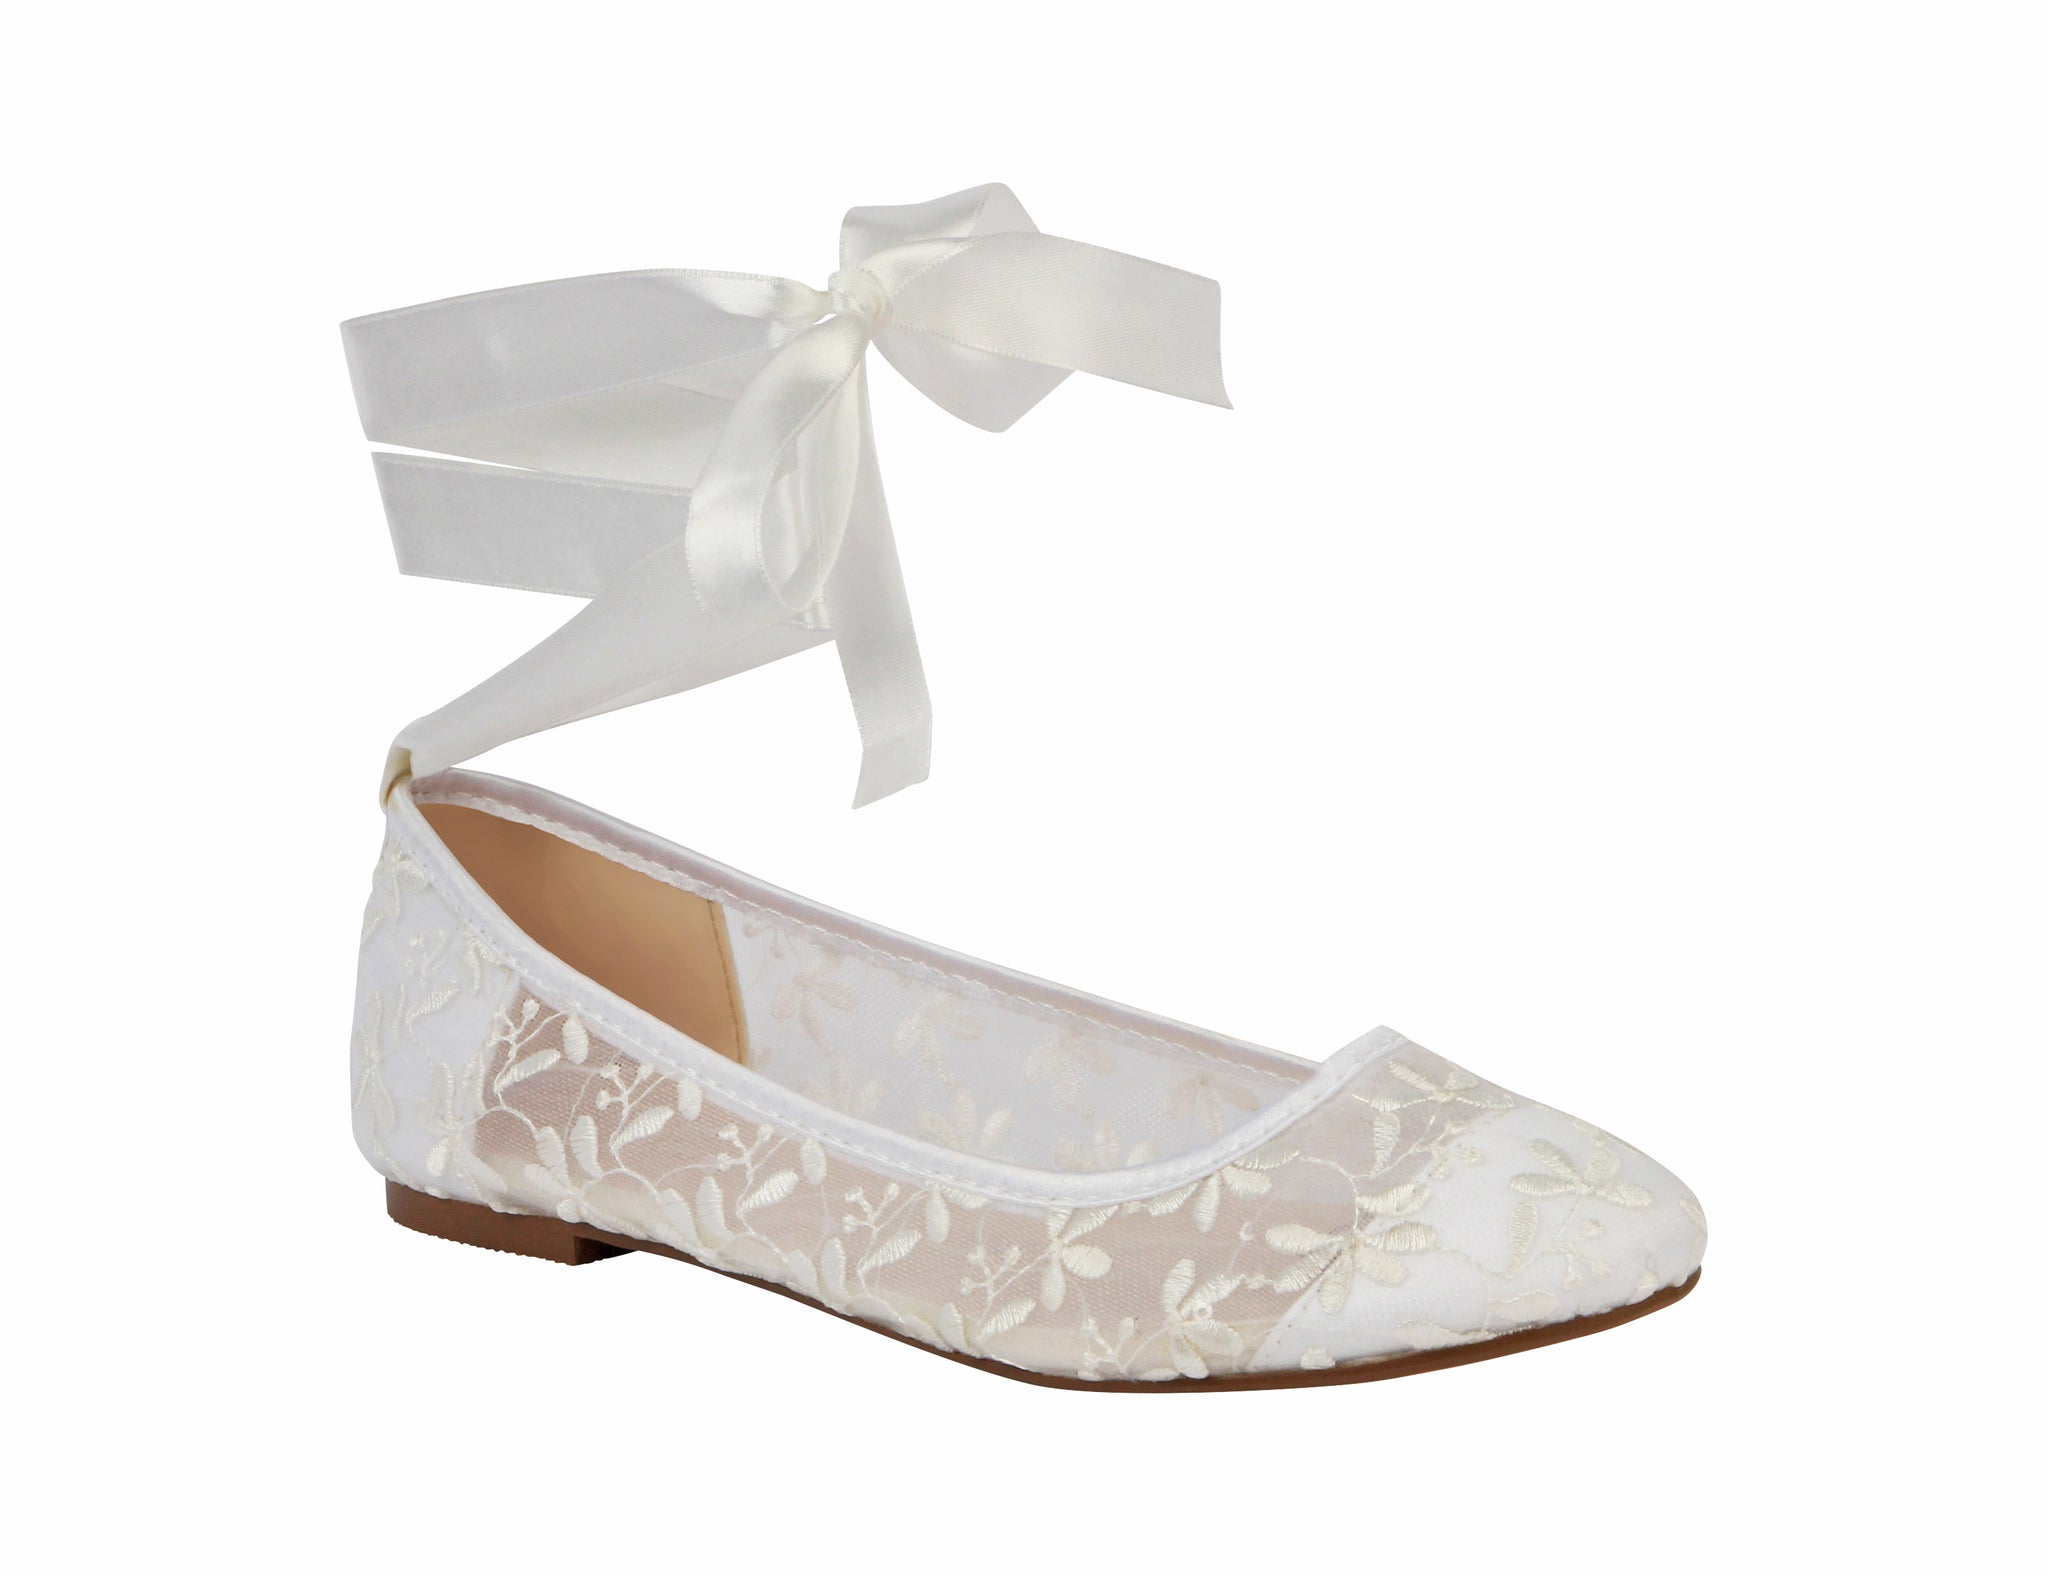 De Blossom Bridal Women's Sheer Lace Wedding Ballet Flat with Optional Satin Ribbon Ankle Ties- White